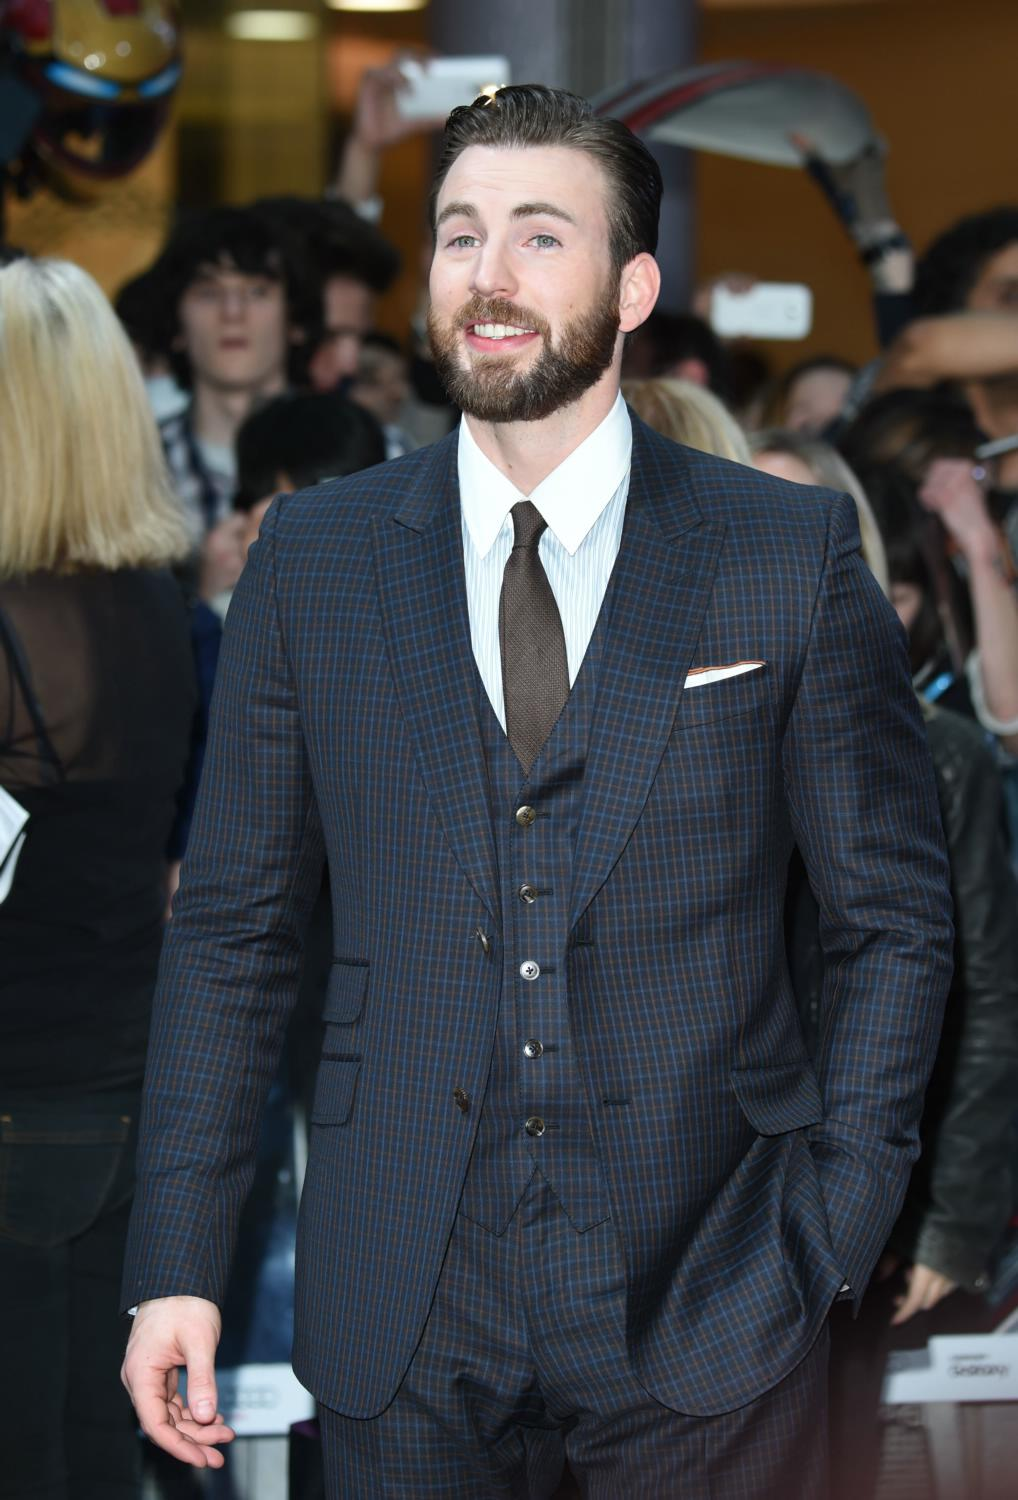 Chris Evans photo #650140